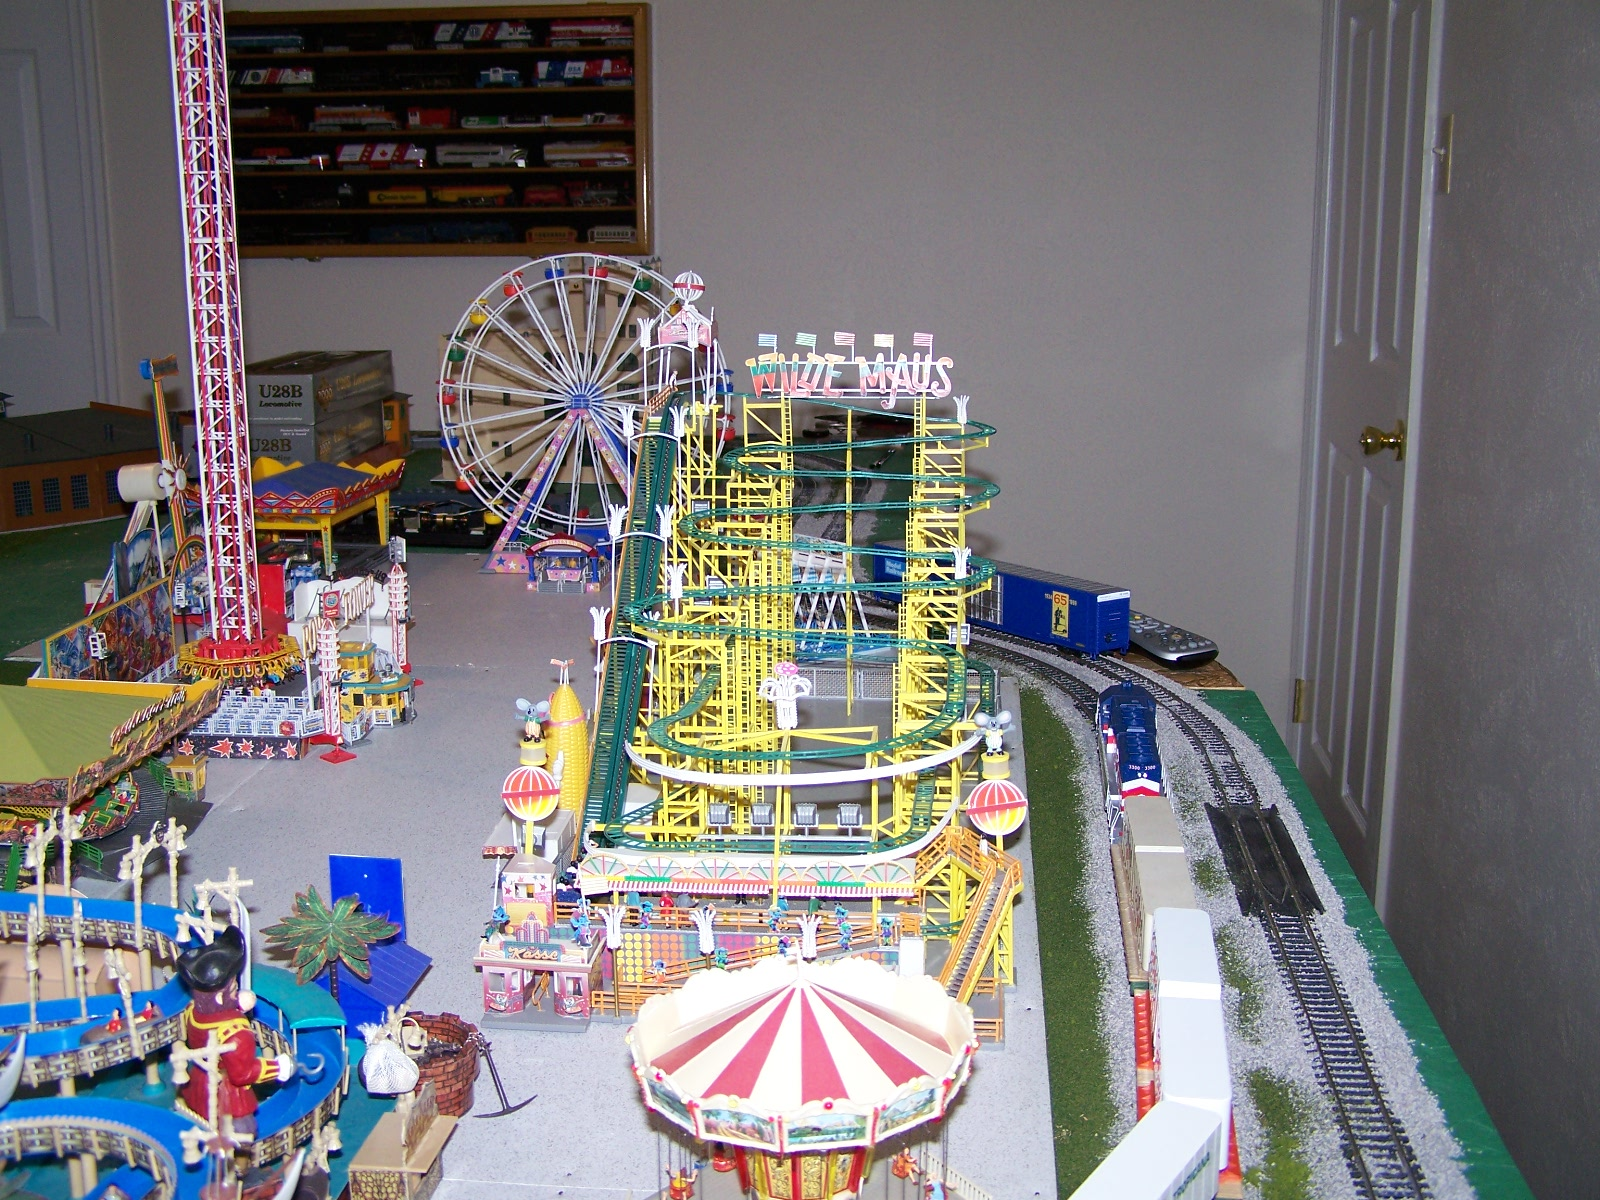 HO Scale Operating Carnival Rides http://www.tycoforums.com/tyco/forum/topic.asp?TOPIC_ID=6859